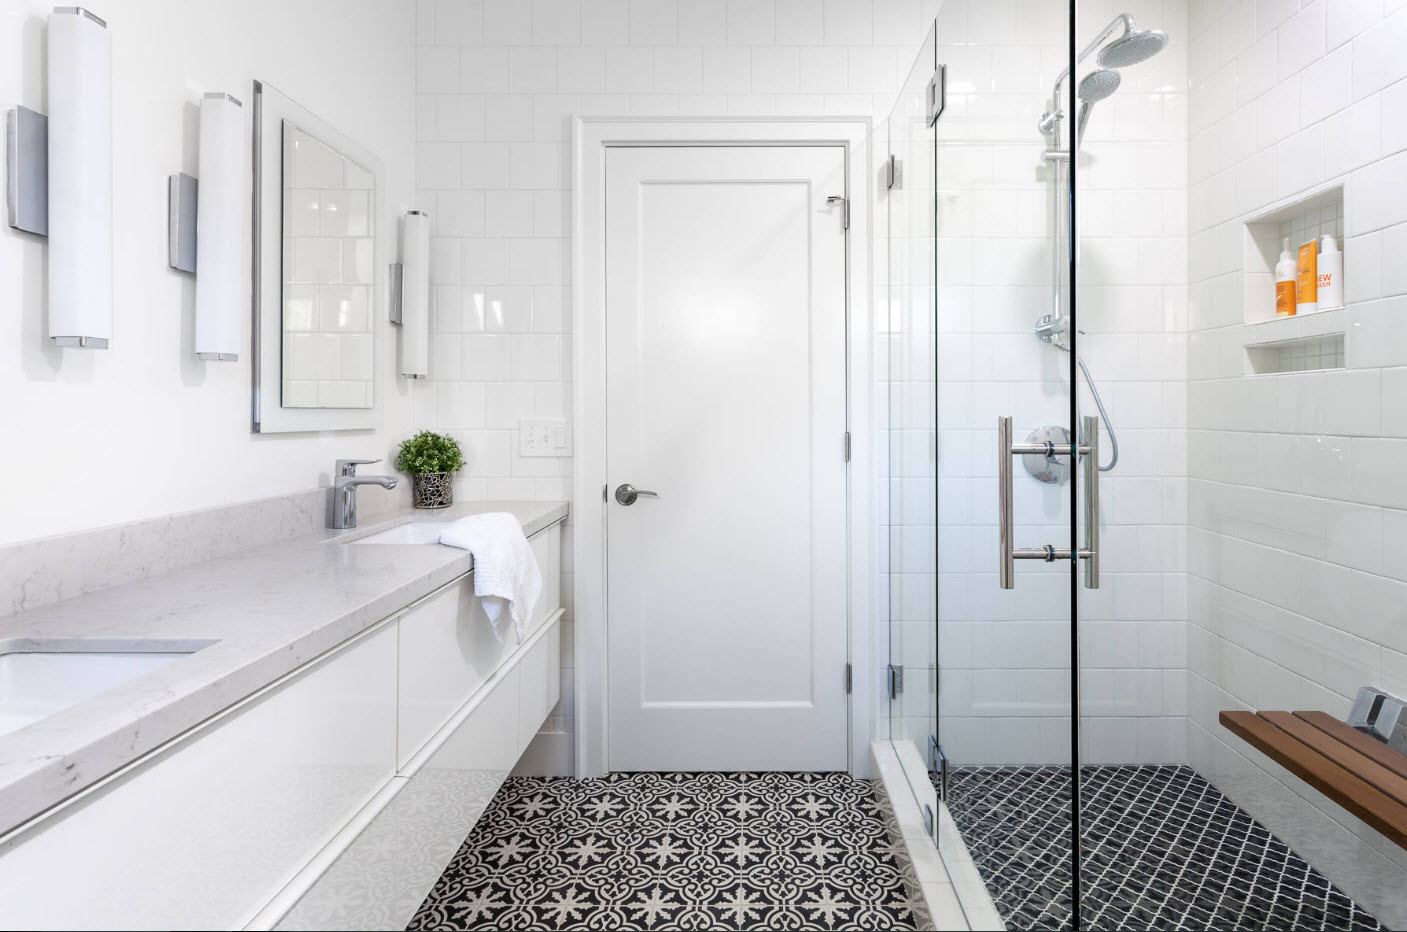 Contrasting dark tiled floor and contemporary styled bathroom